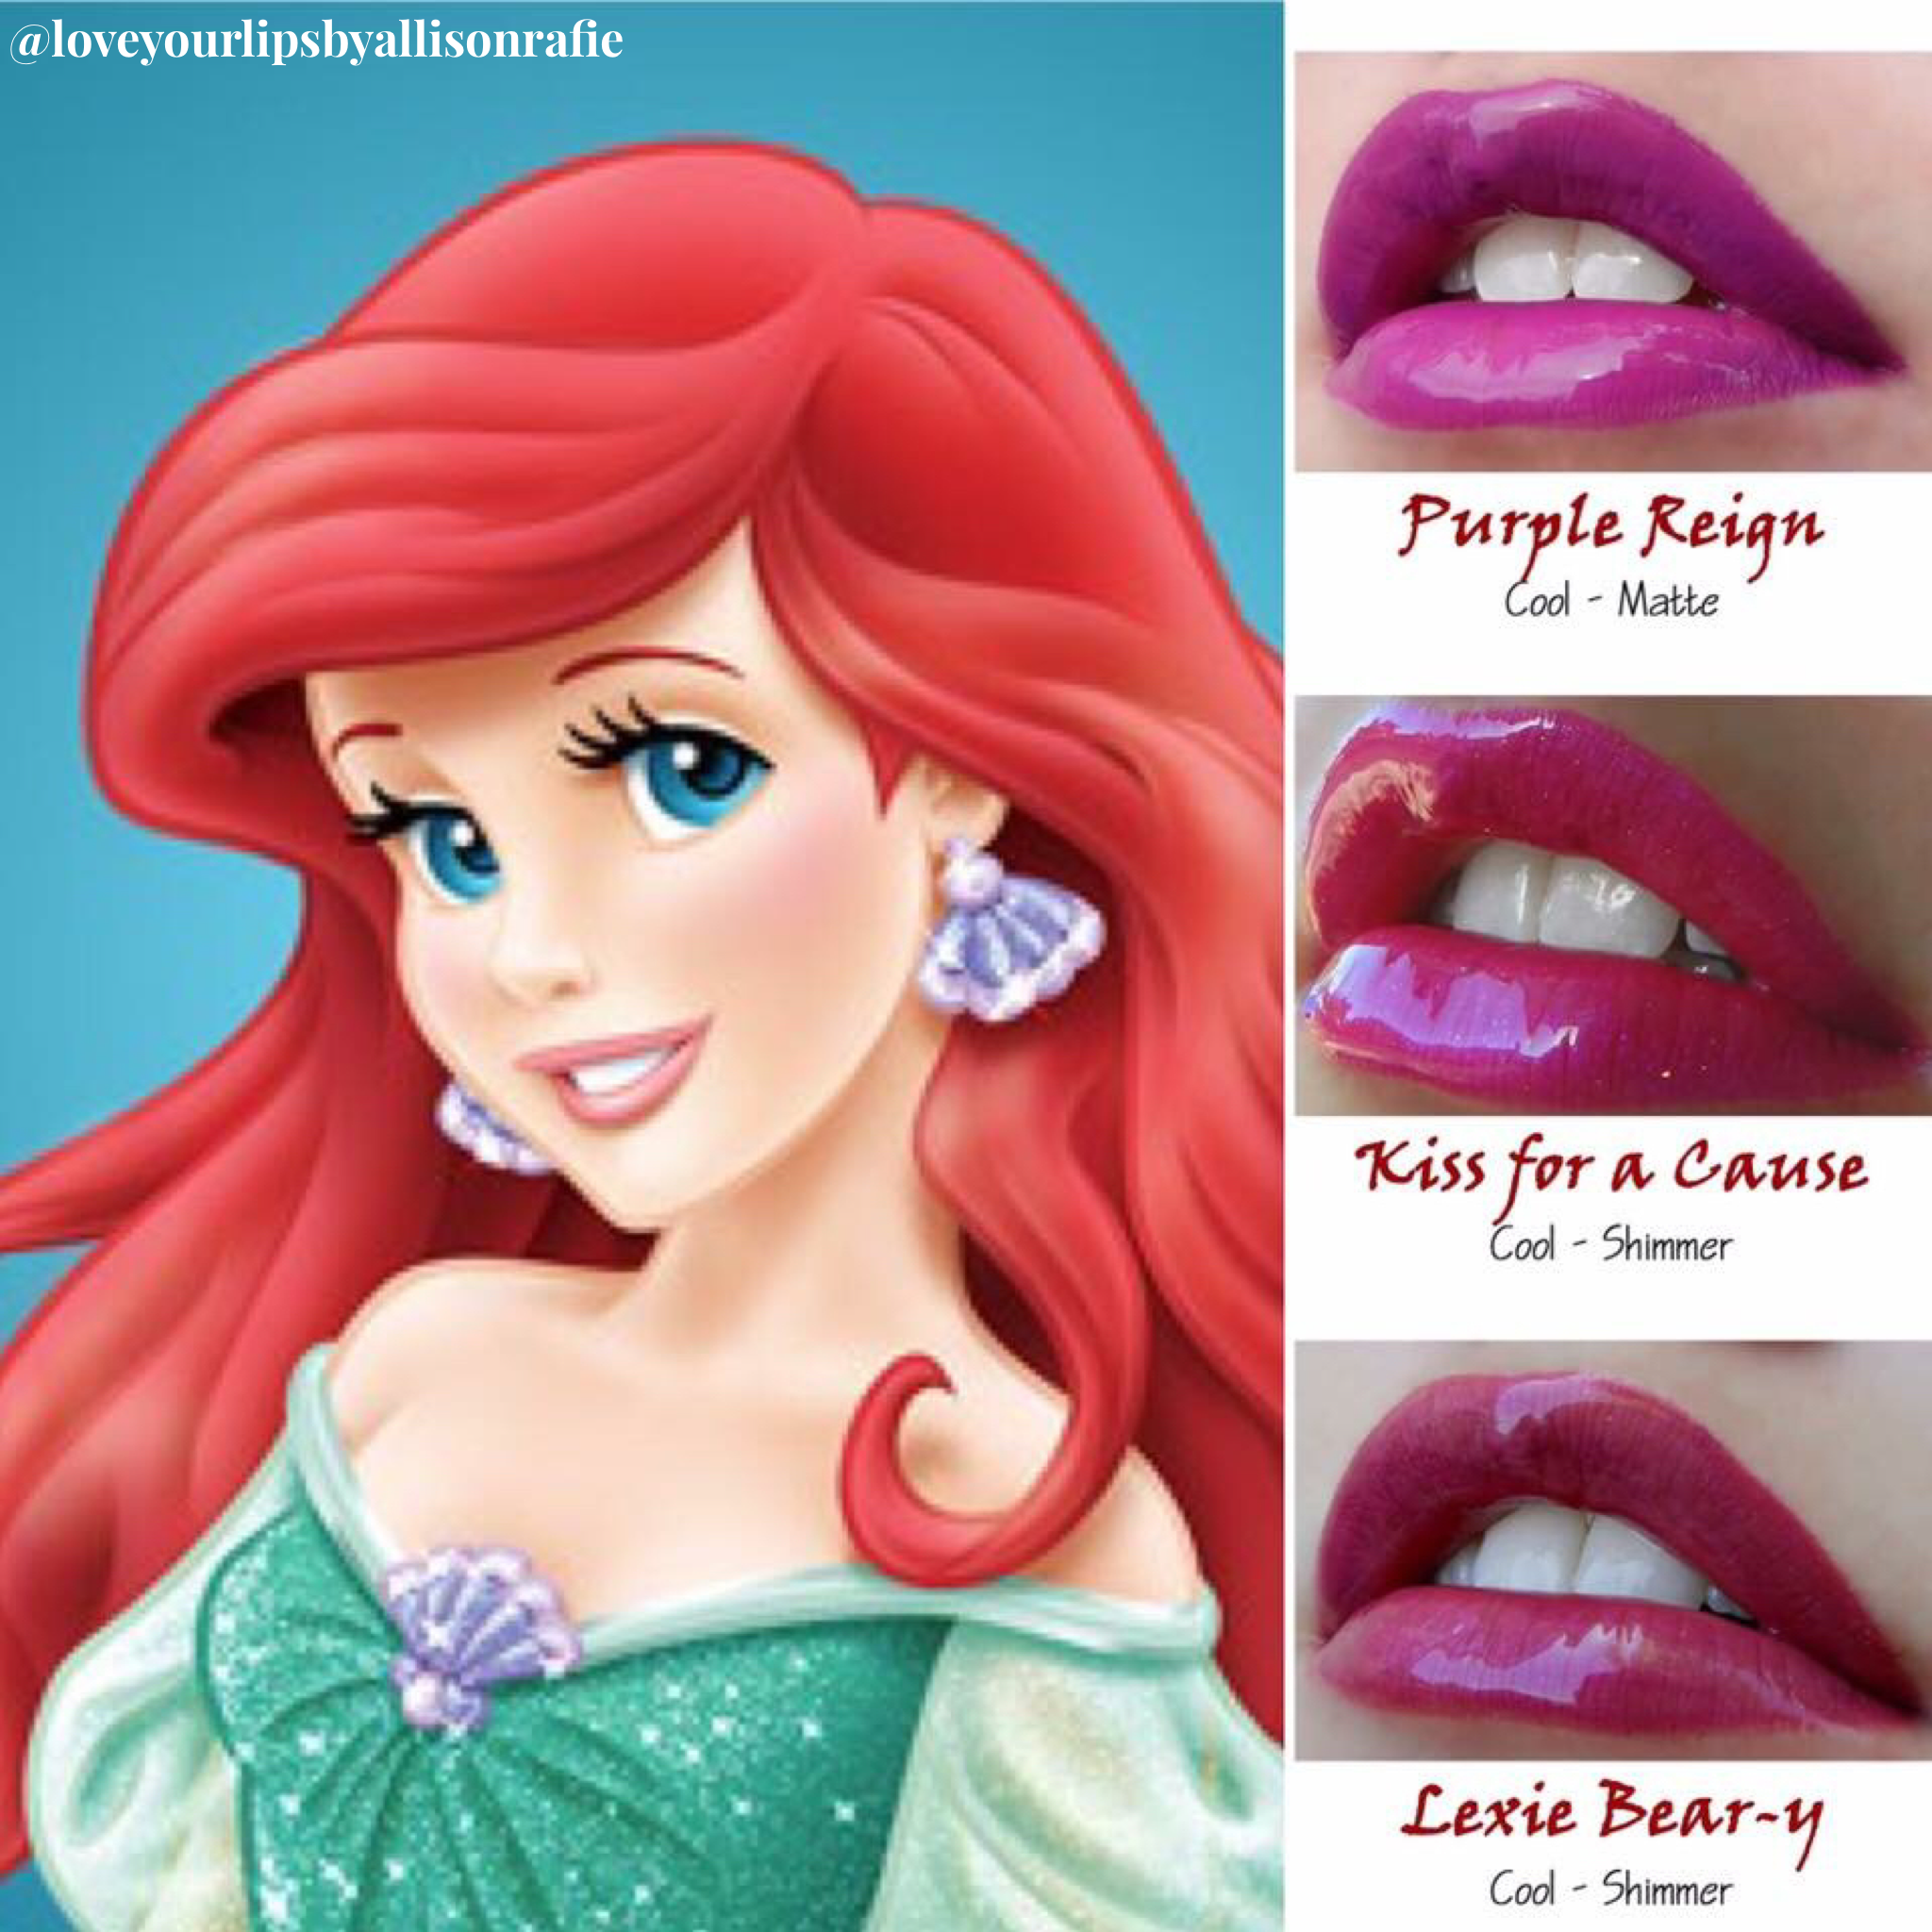 Ariel The Little Mermaid Lipsense Love Your Lips By Allison Rafie Distributer 328364 Http Www F Disney Prinzessin Ariel Die Kleine Meerjungfrau Disney Kunst